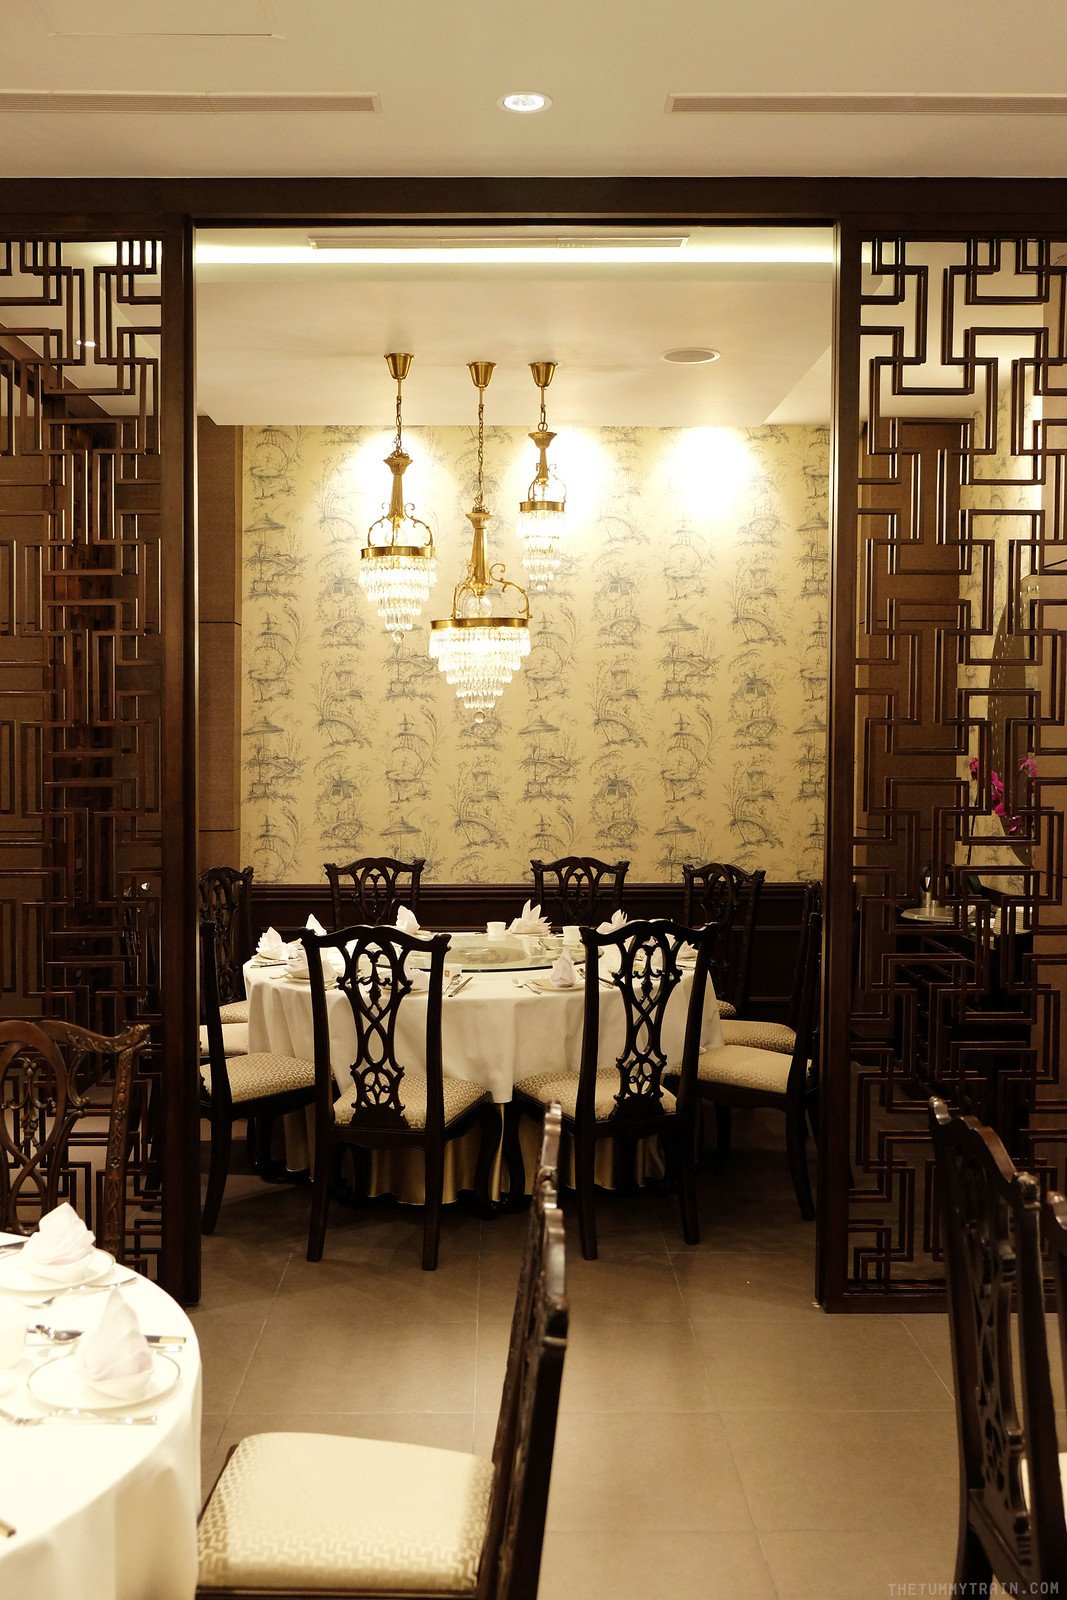 27994544784 5937159491 h - An evening of elegance and excellence at Xiu Fine Cantonese Dining